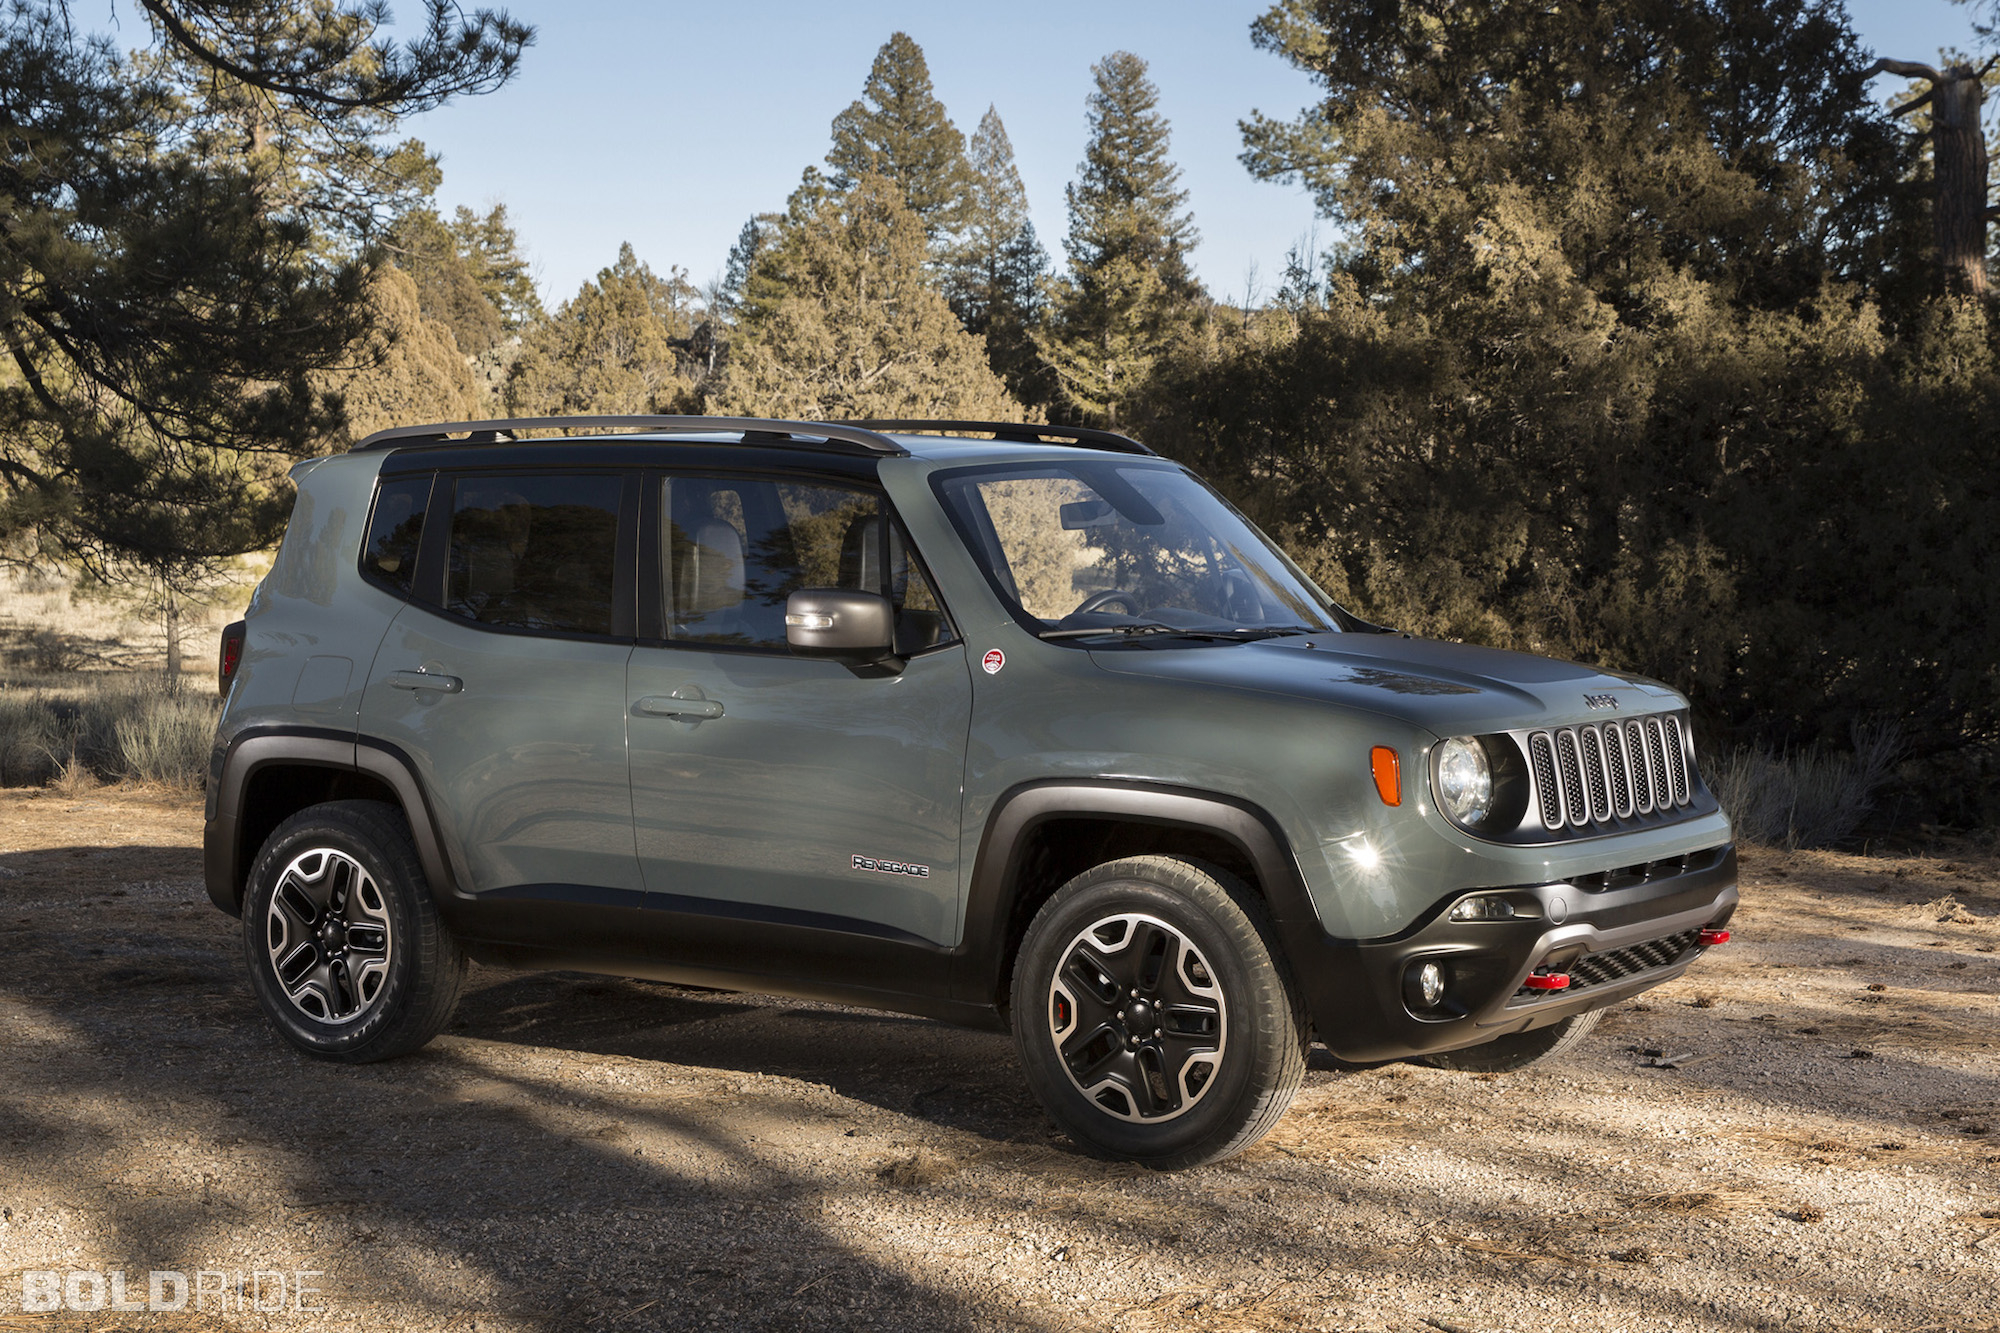 2015 Jeep Renegade Information and photos ZombieDrive